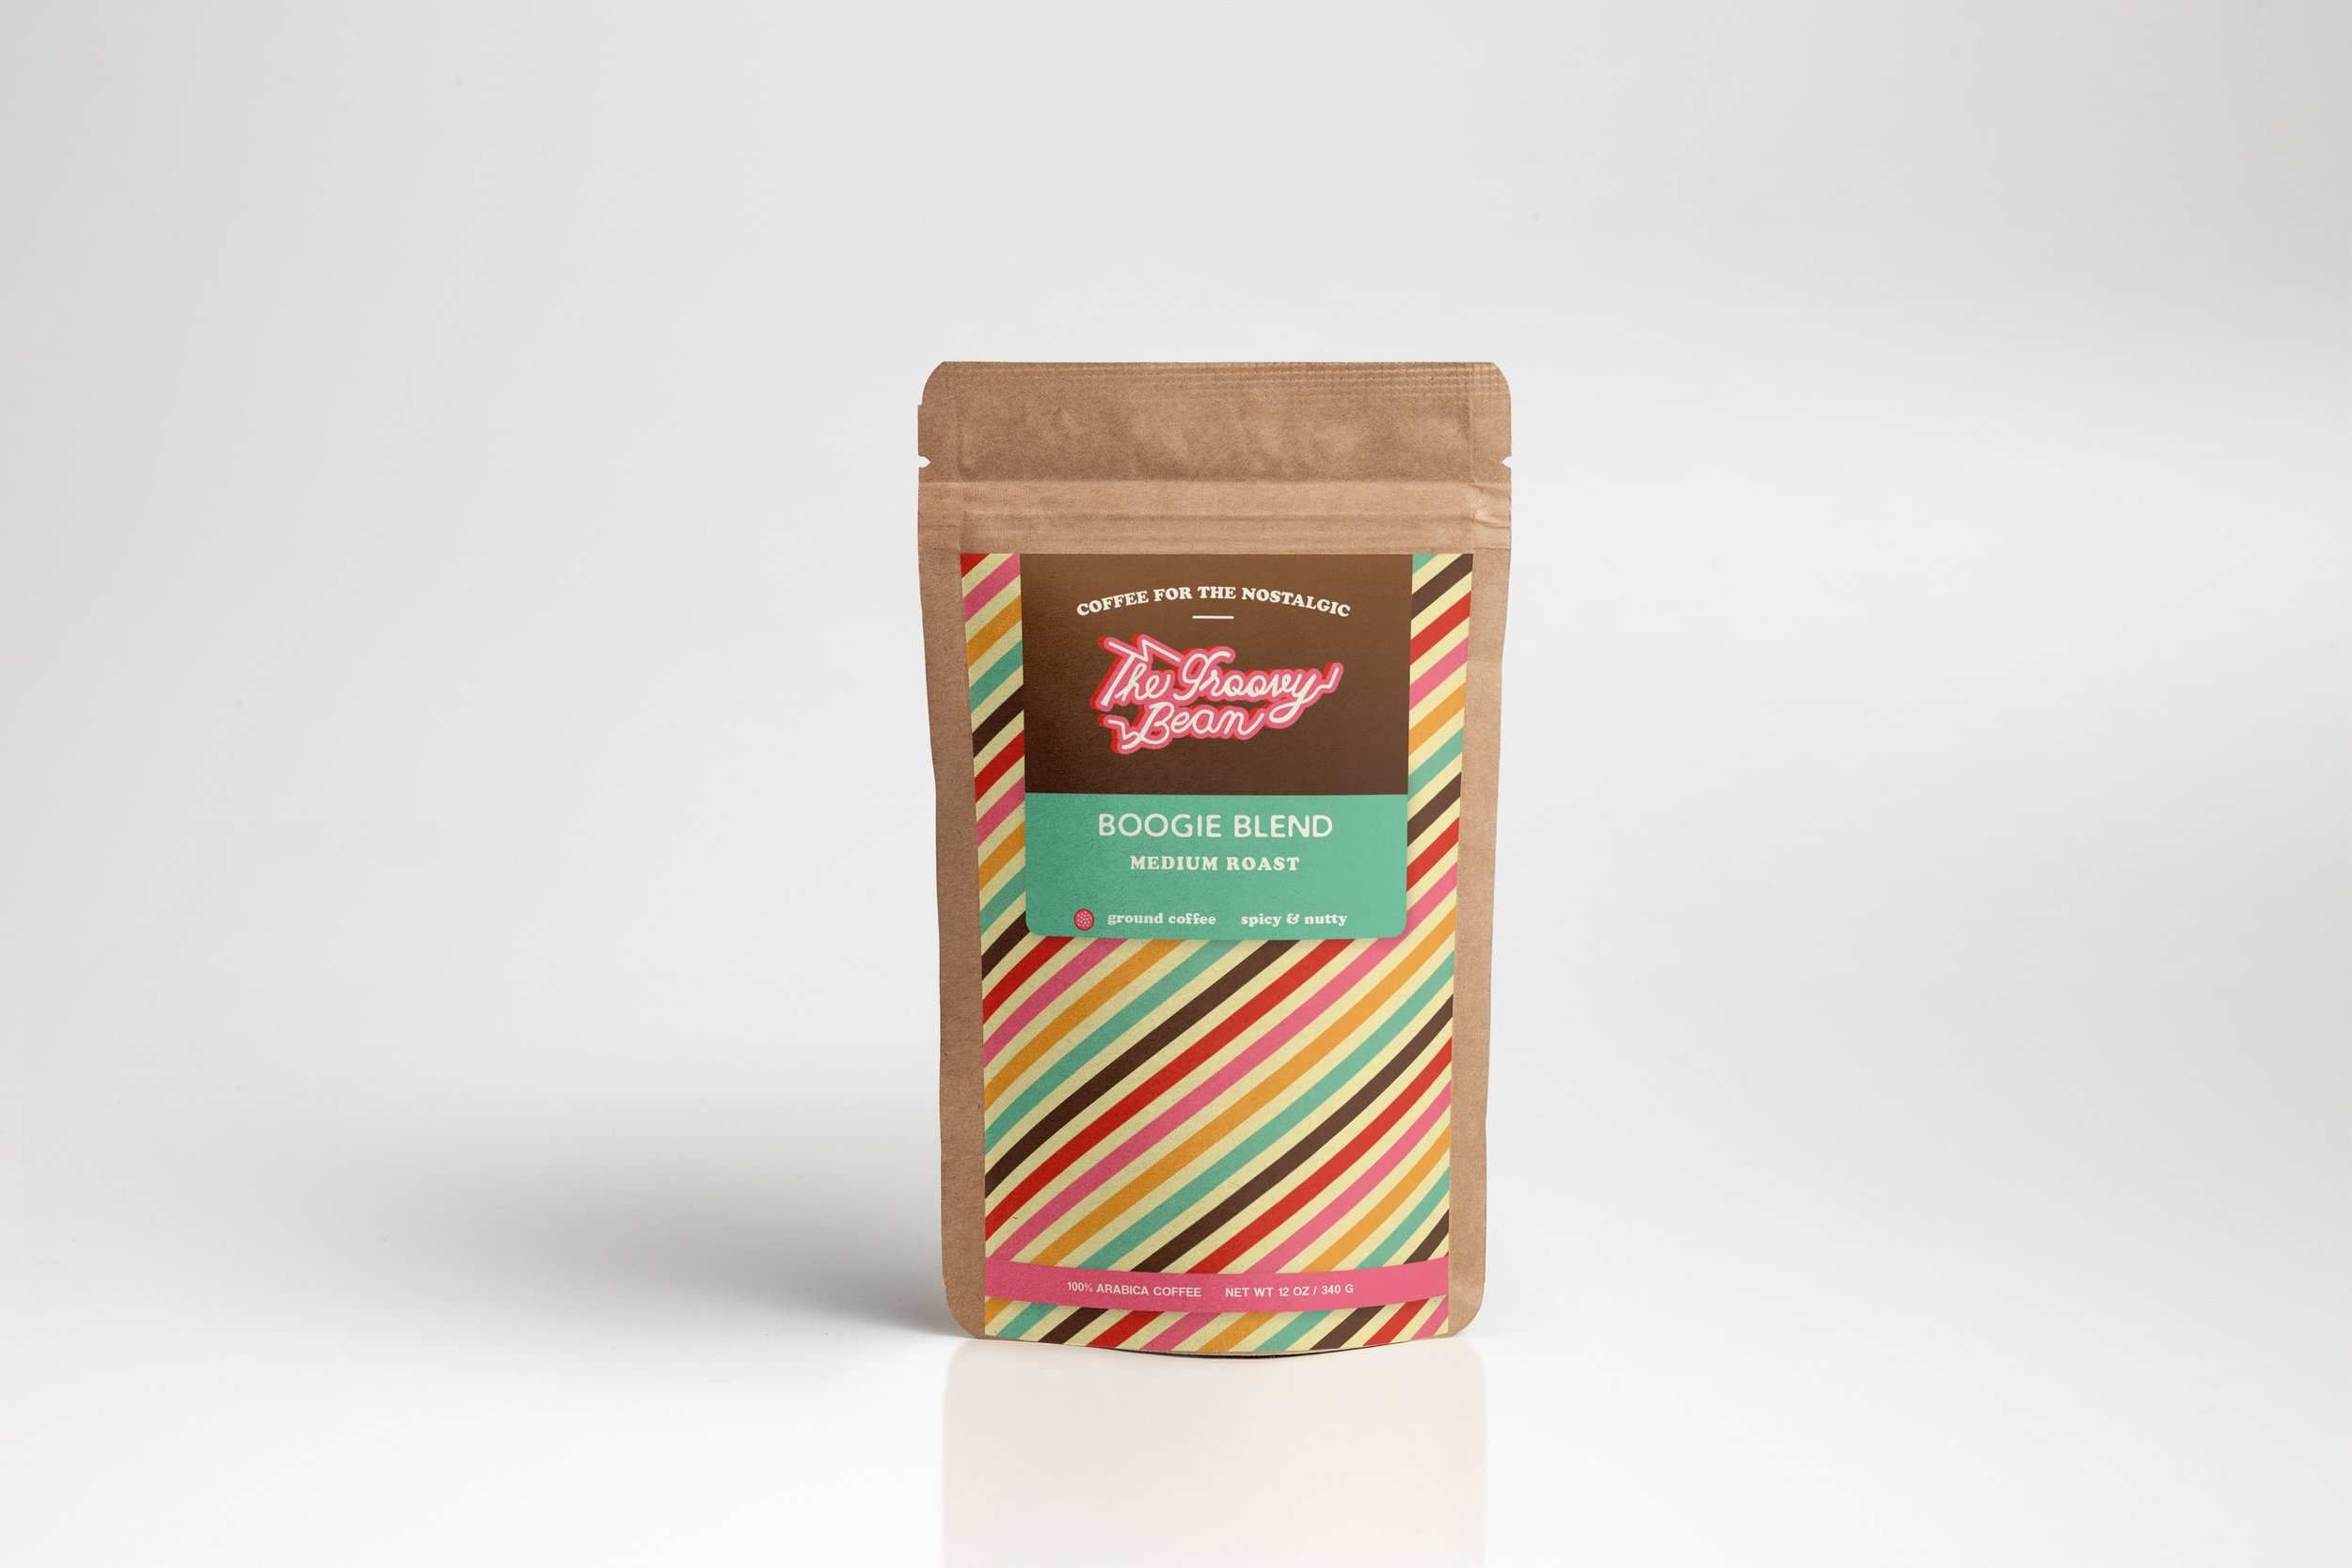 Paper-Pouch-Packaging-MockUp.jpg